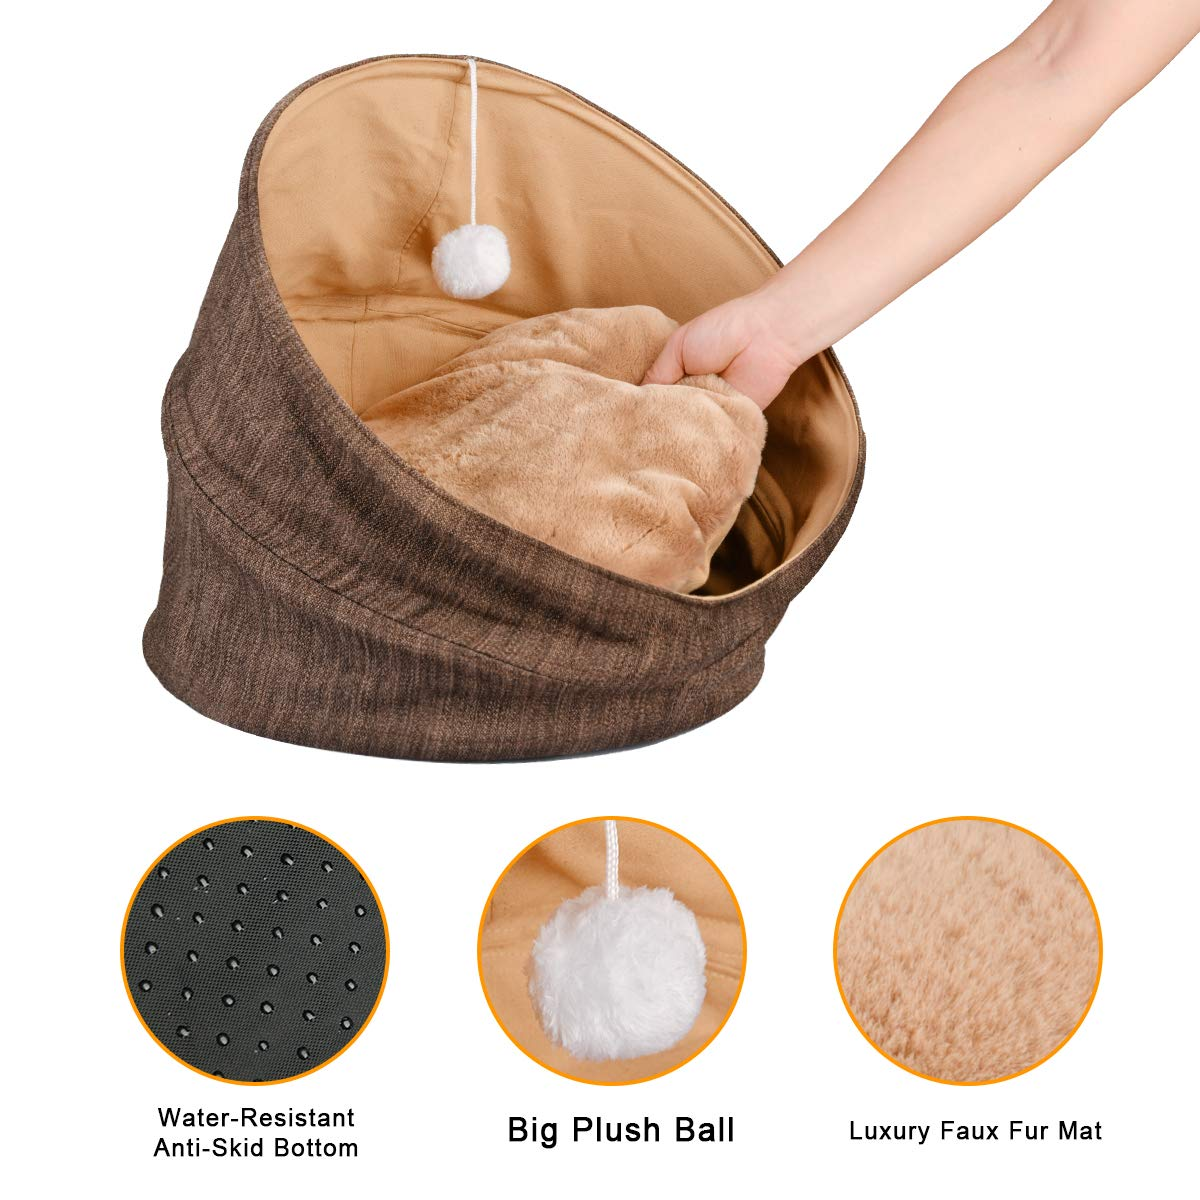 Cuddle Cave Pet Bed Tent for Cats or Small Dogs, Washable Foldable Kitten House with Luxury Shag Faux Fur Mattress & Toy Ball - Brown (18inch) by SUOCO (Image #2)